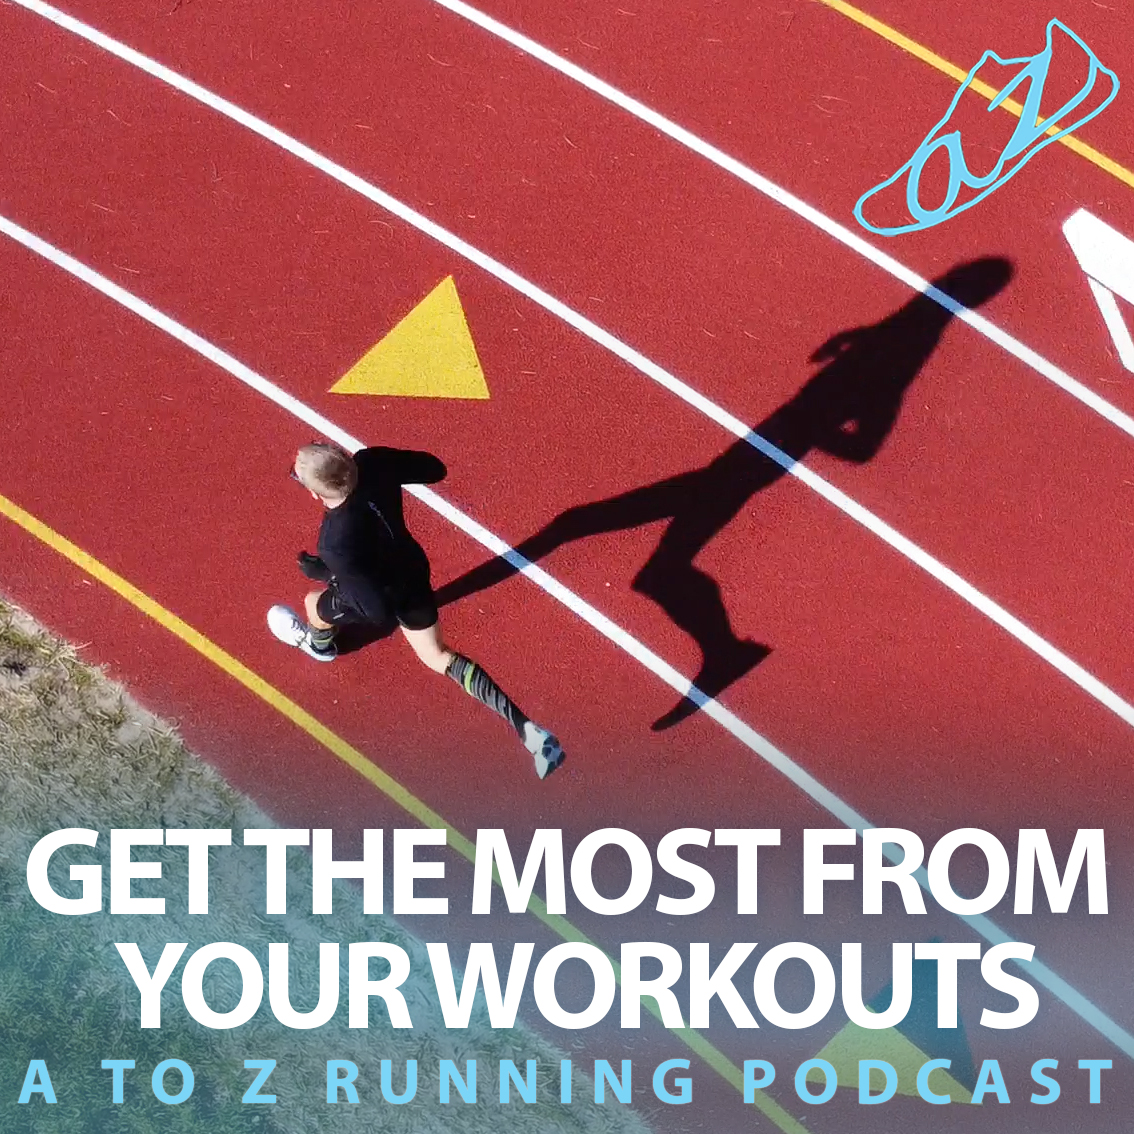 GET THE MOST FROM YOUR WORKOUTS